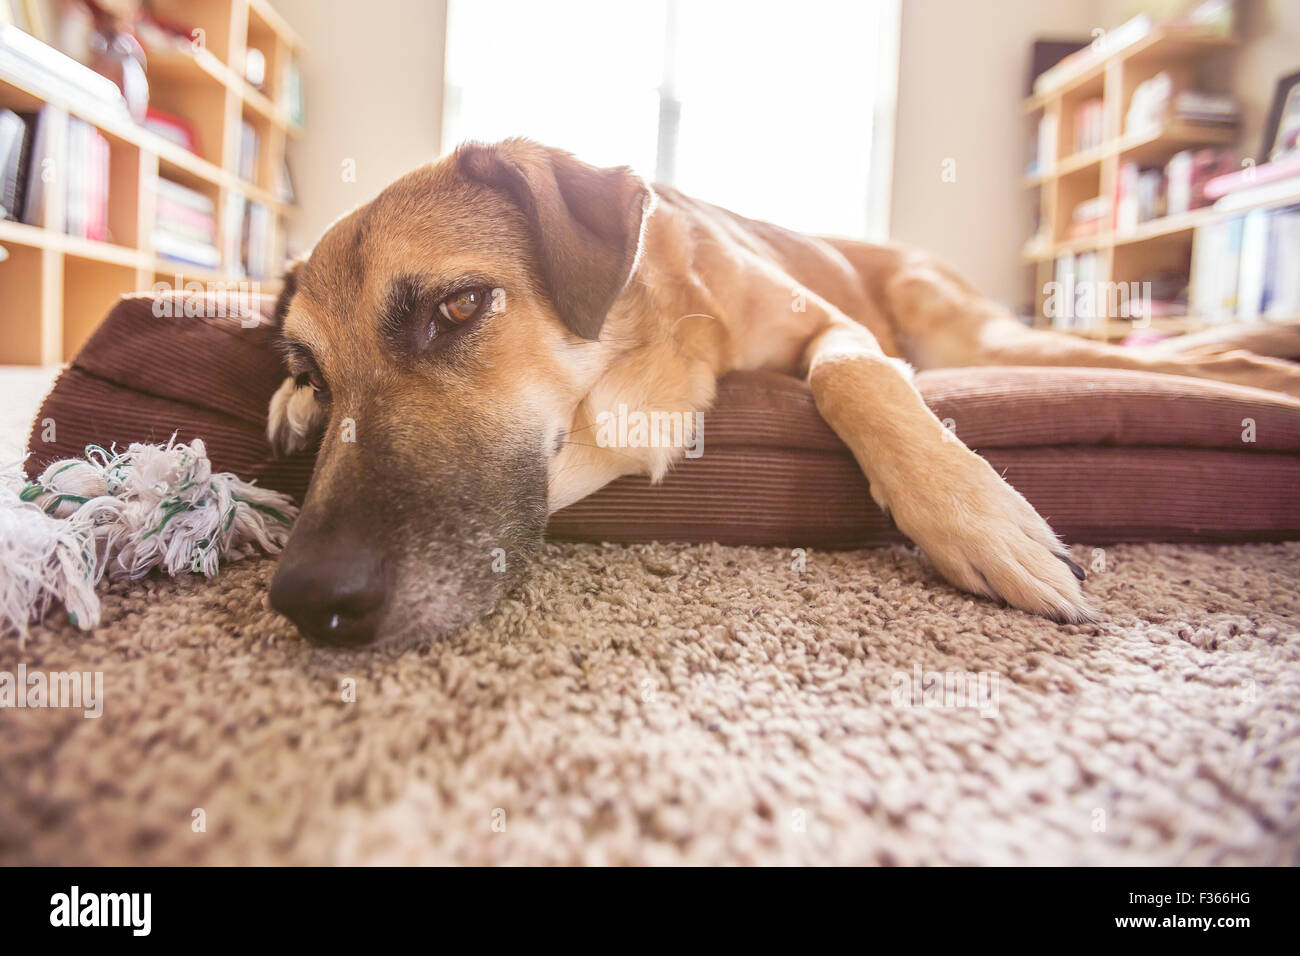 Big dog laying down on the dog bed in a room - Stock Image